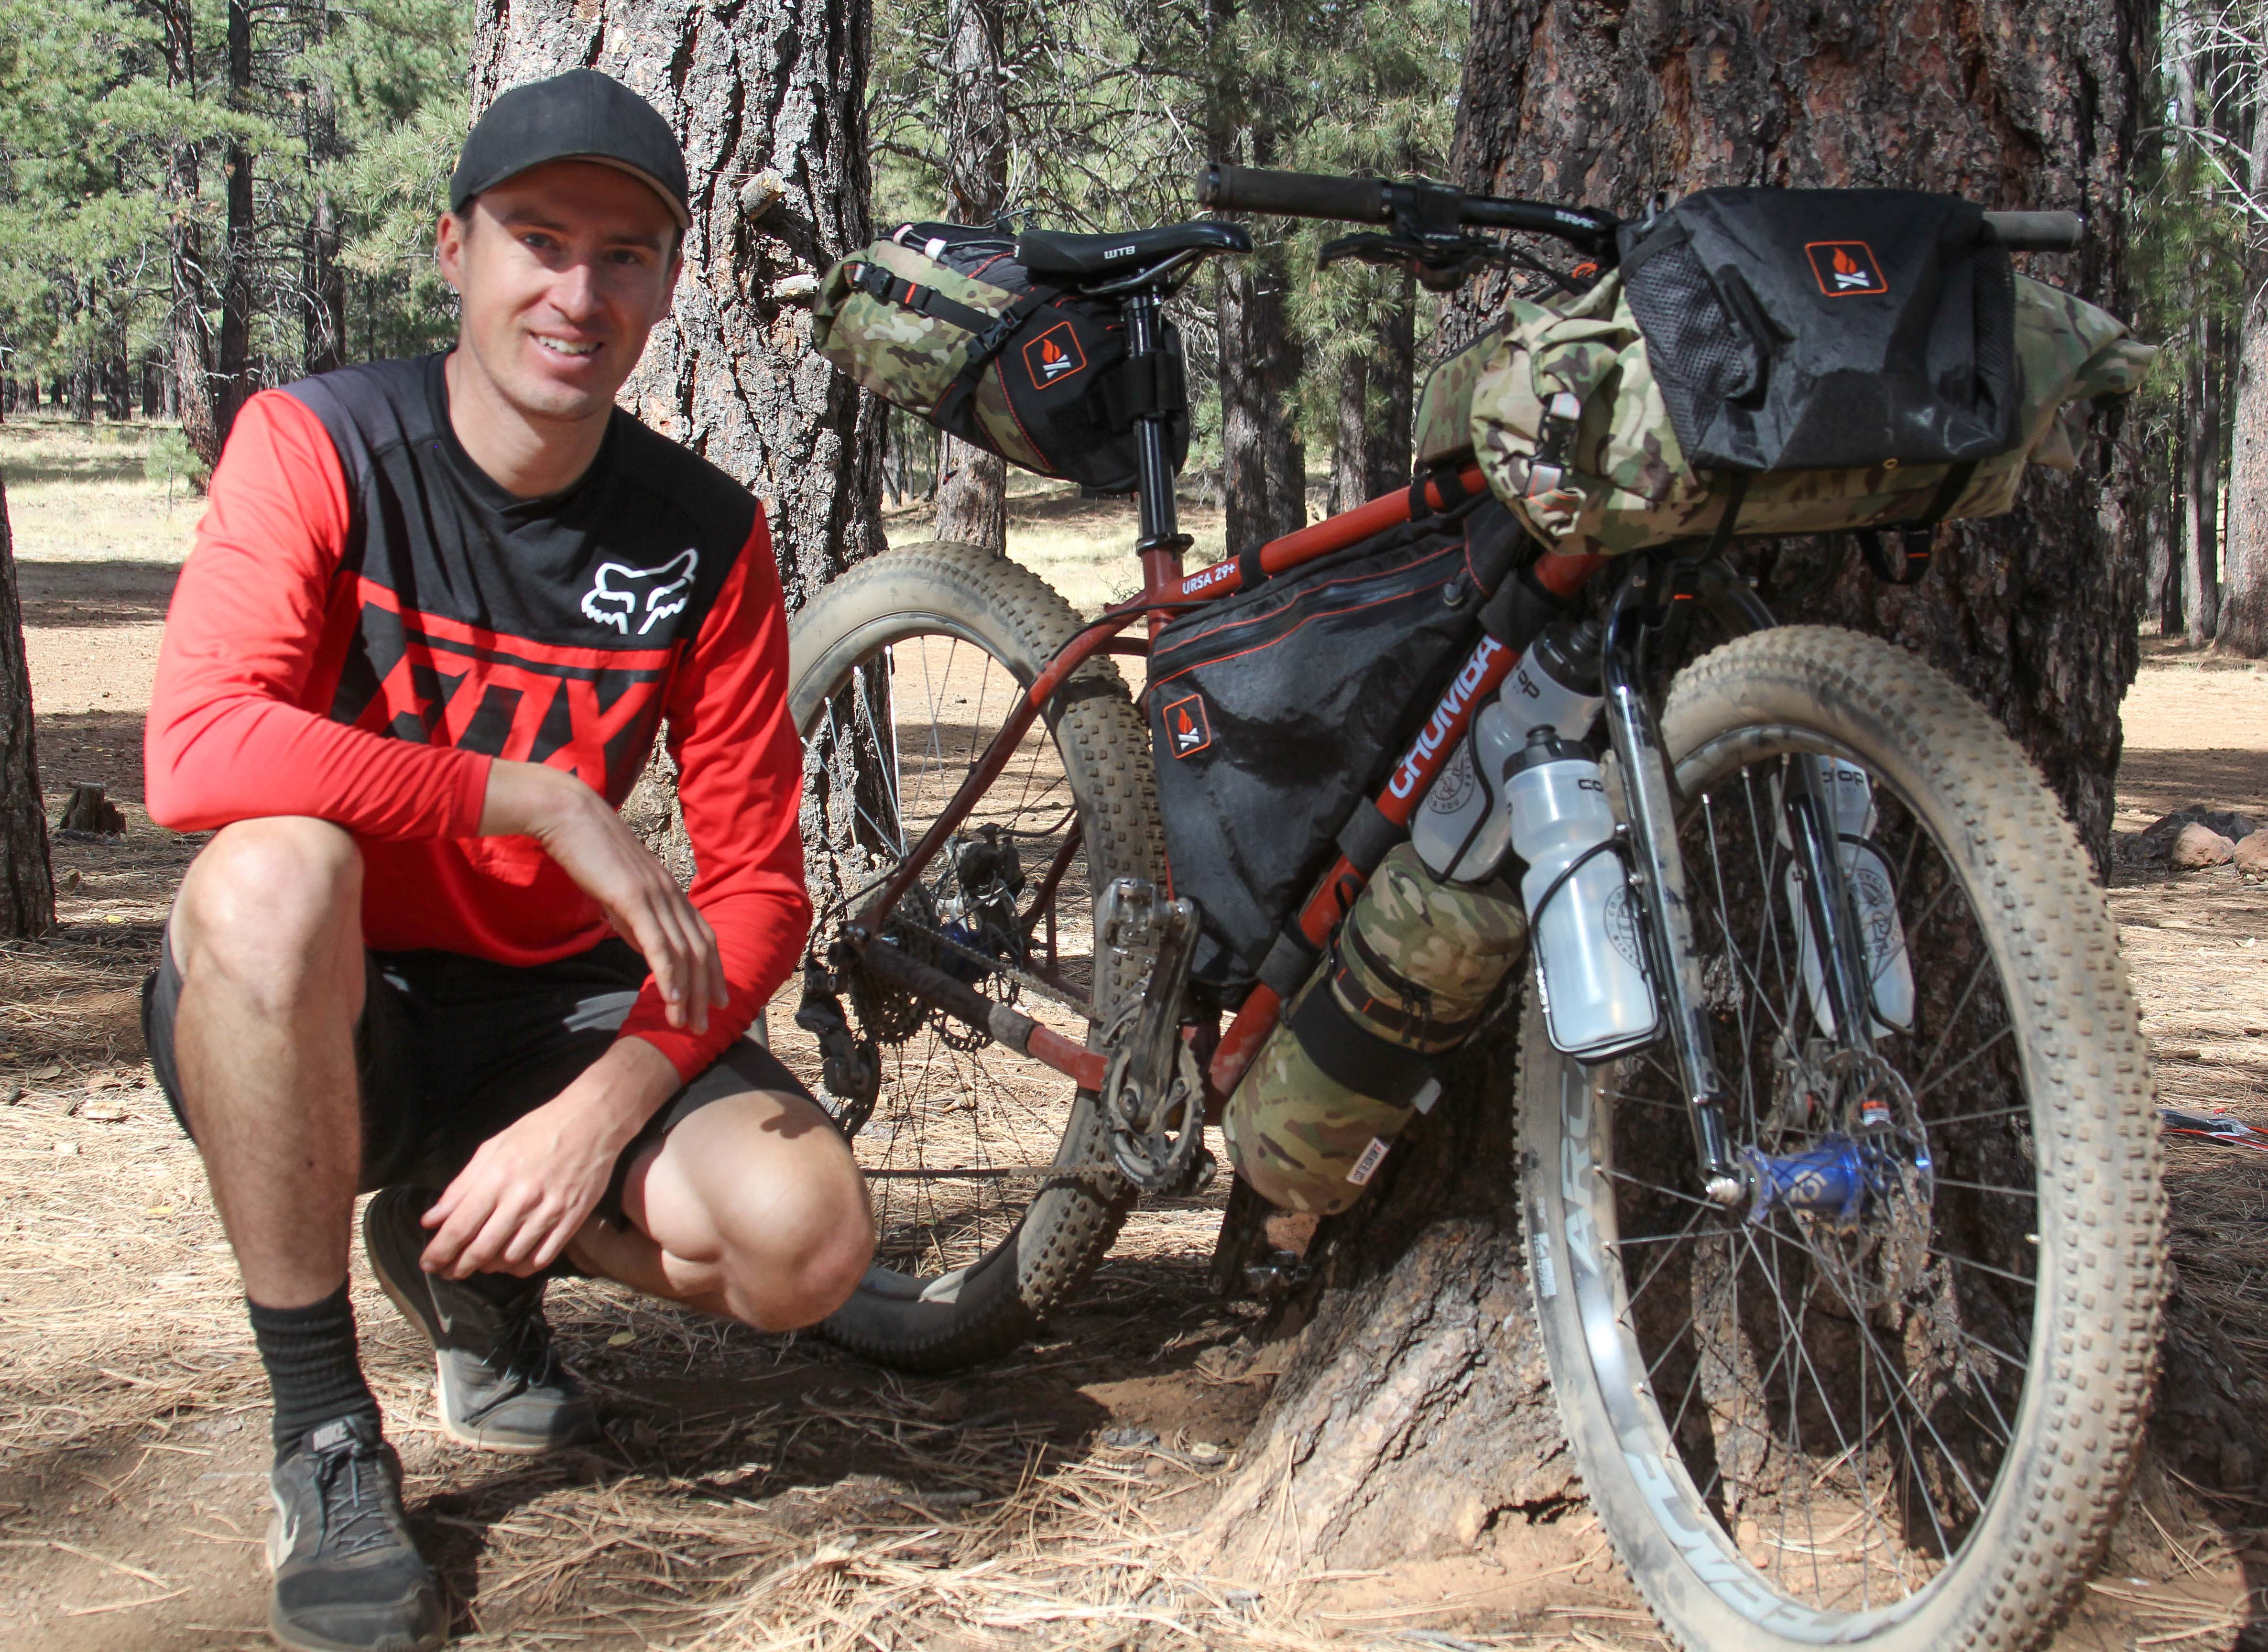 Bikepacking Gear List Bicycle Bags Clothing Tools Amp More